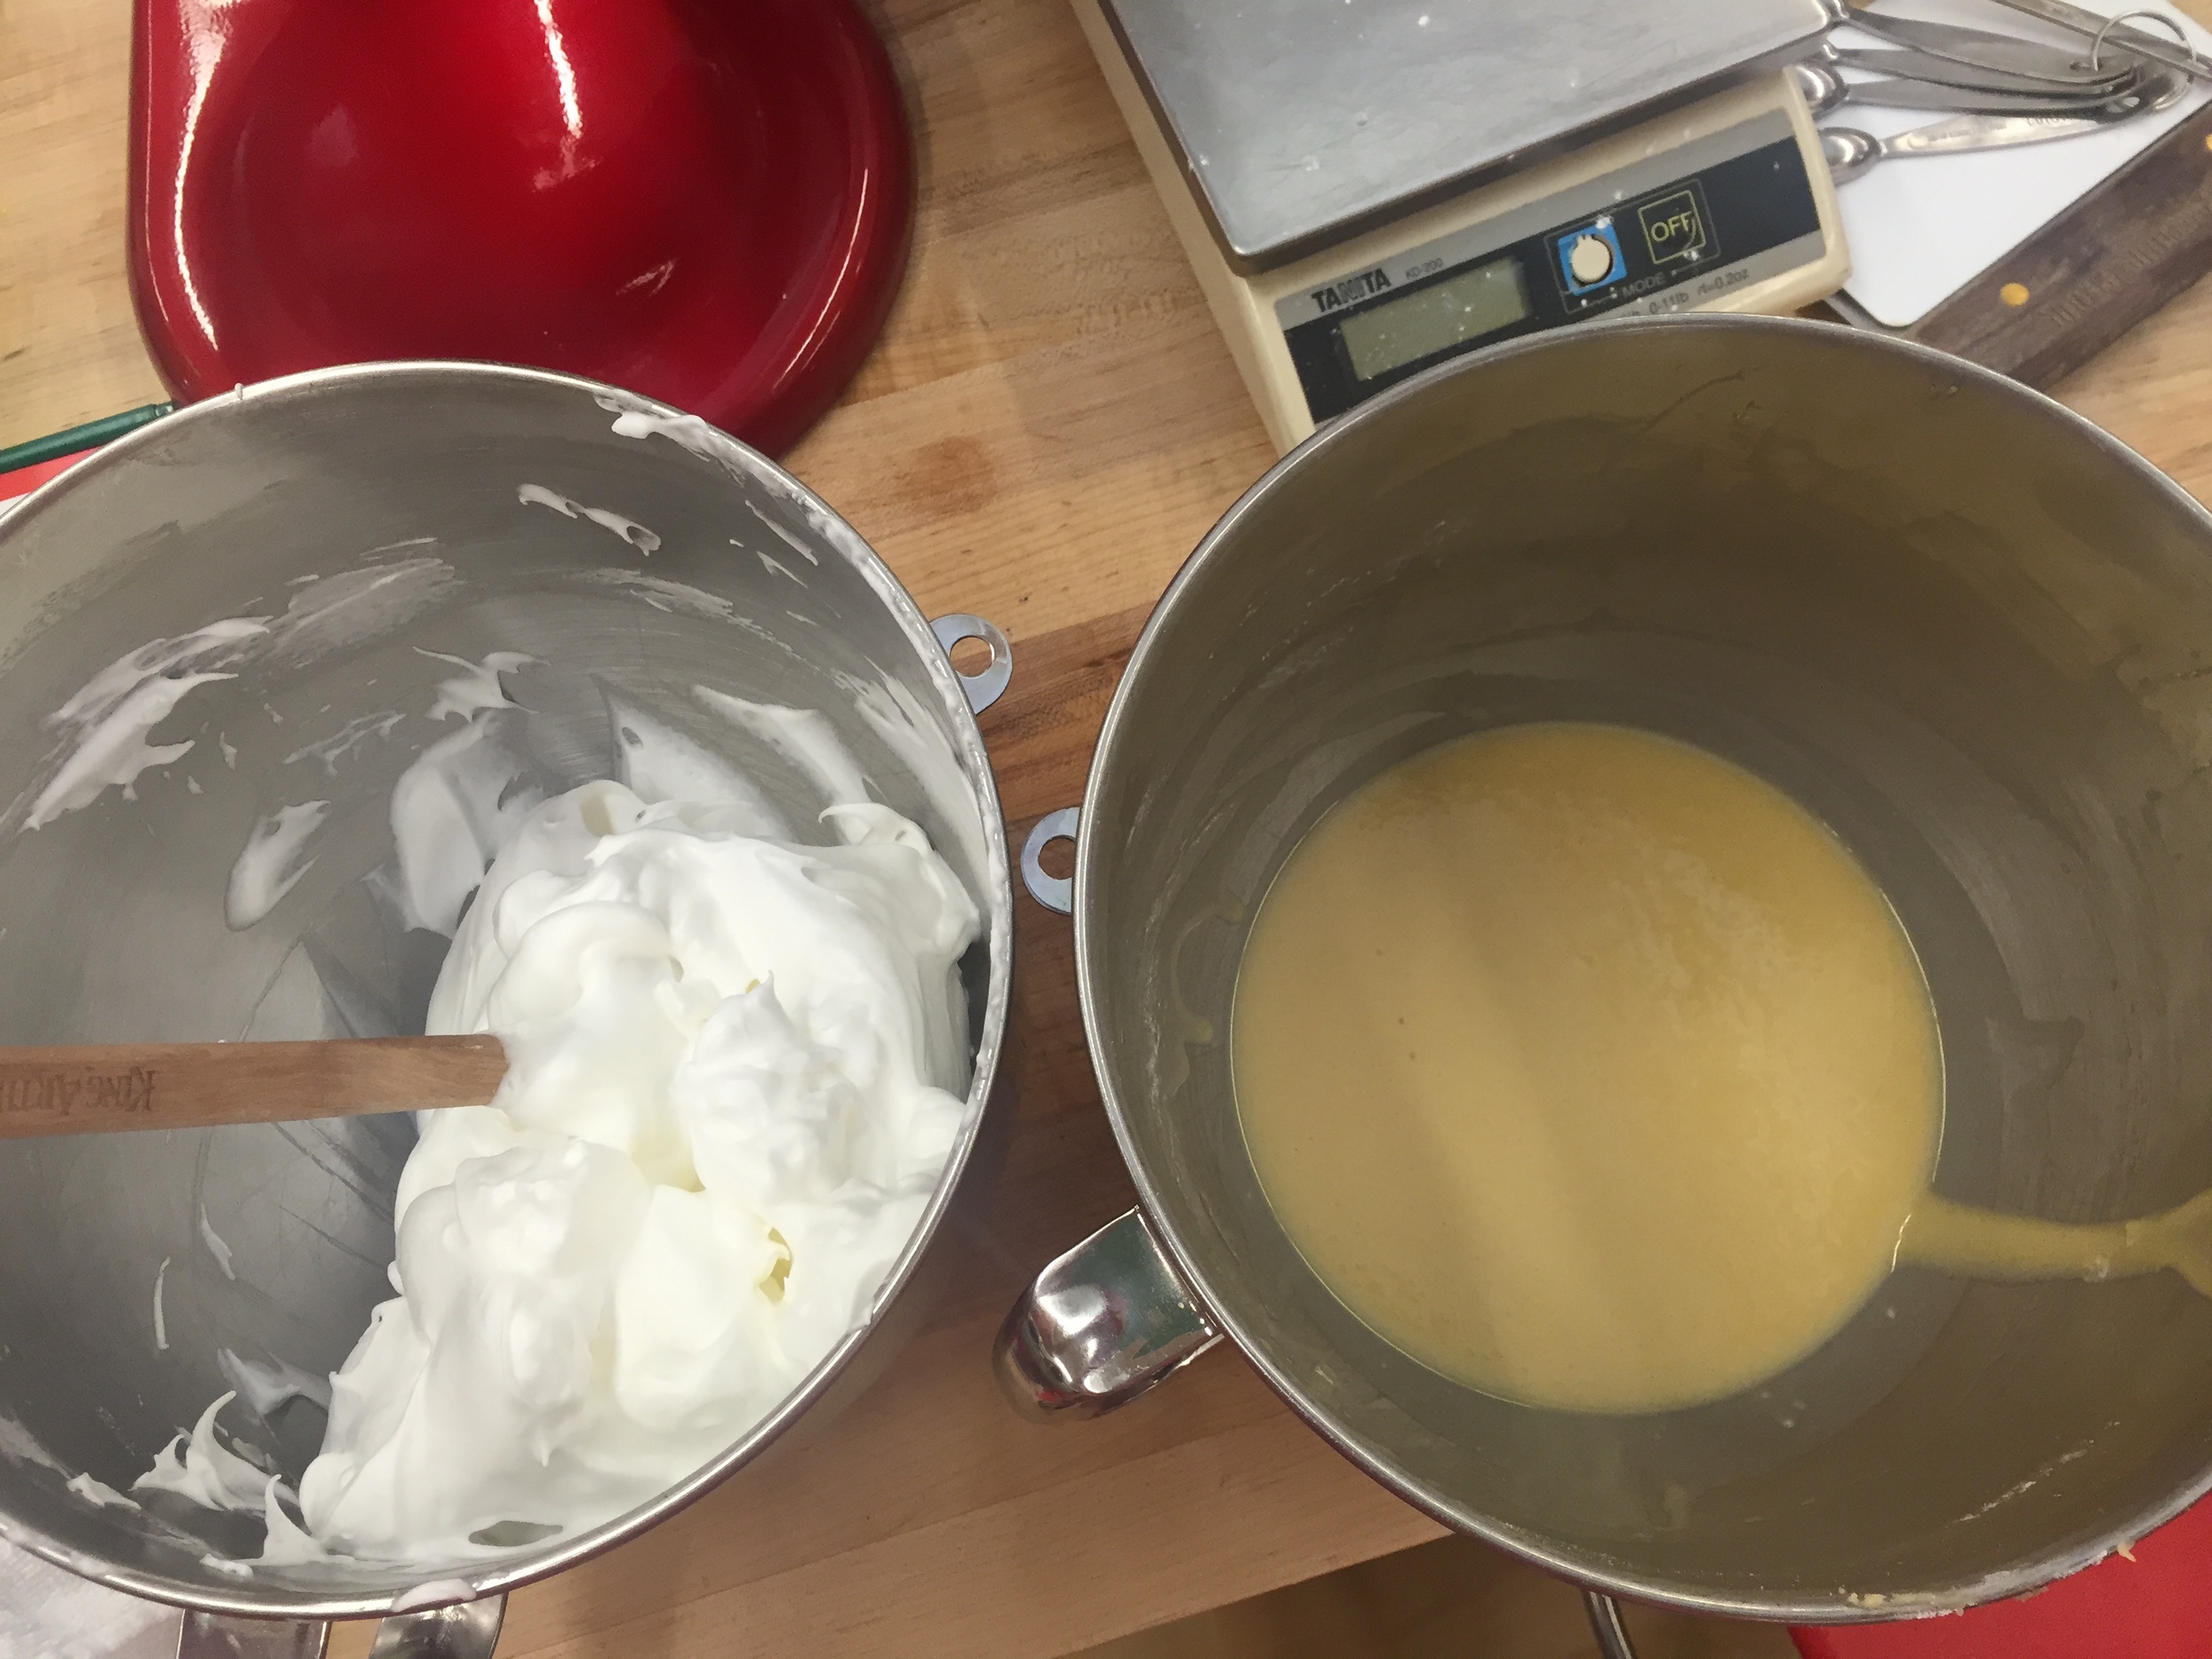 Chiffon cake in-the-making: egg white meringue on the left to be folded into oil/egg/flour batter on the right